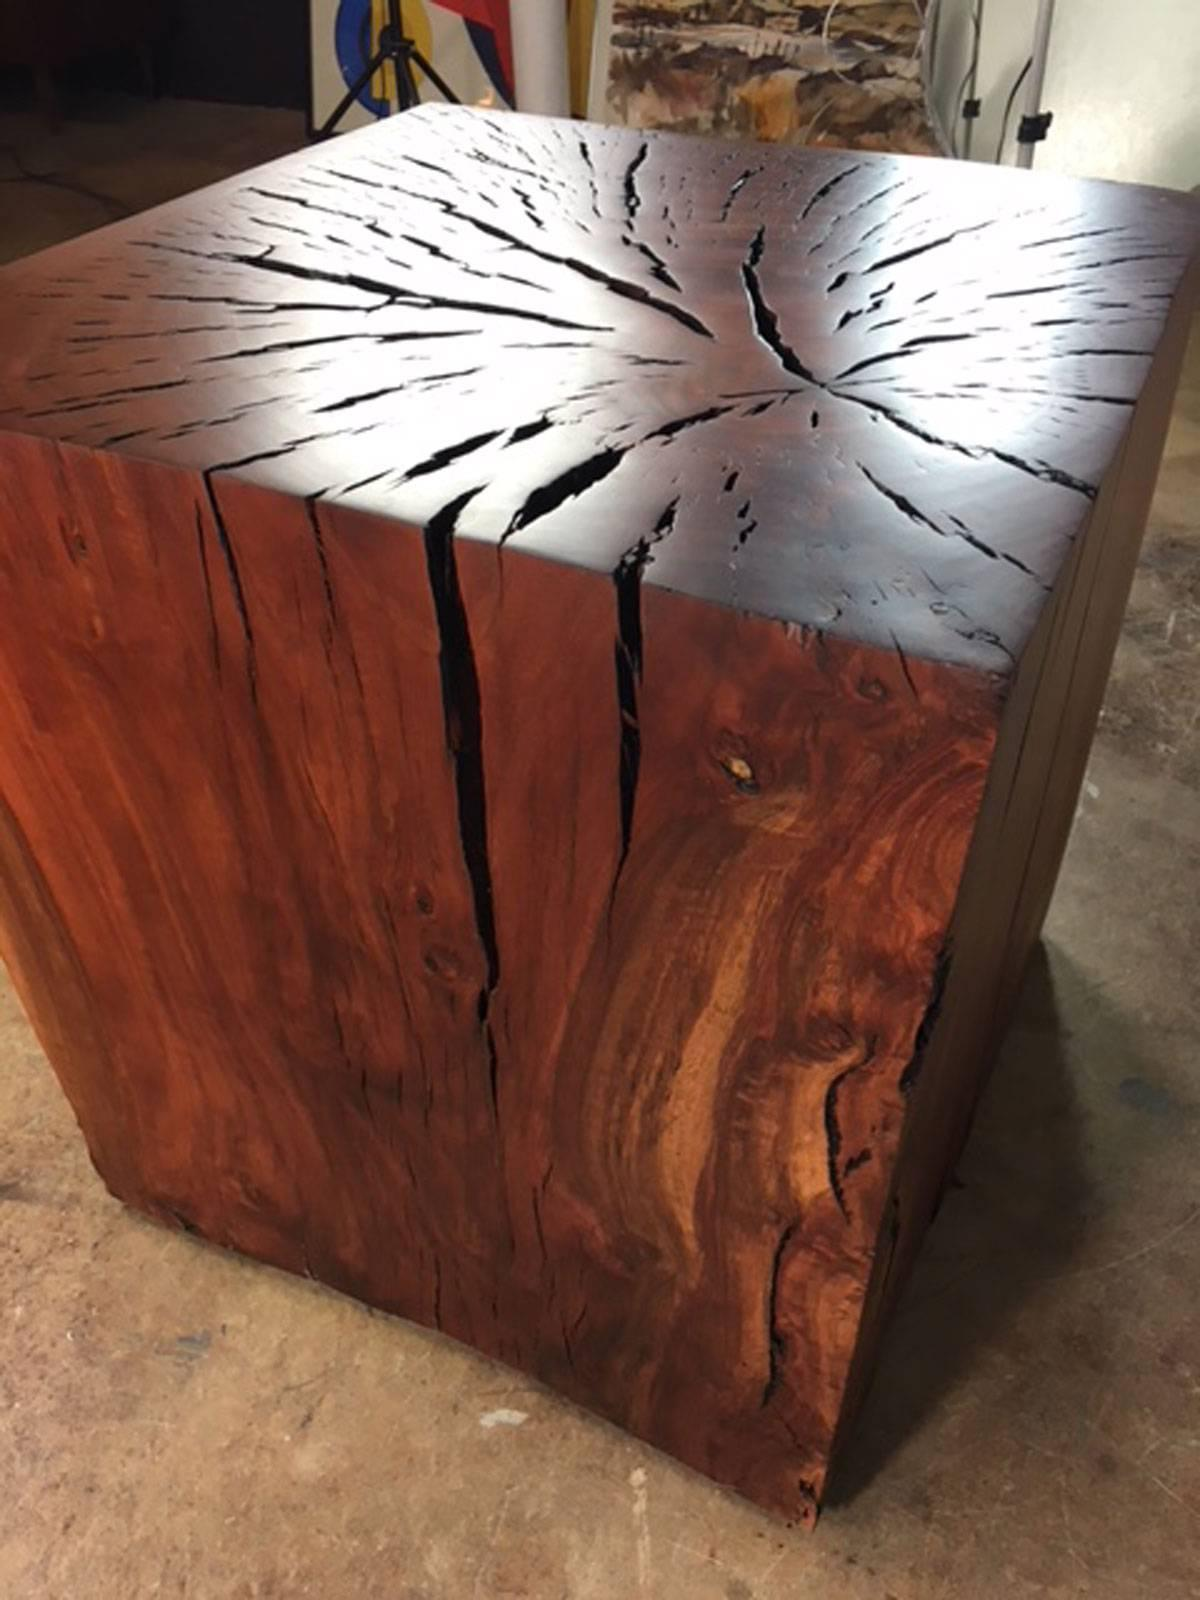 Eucalyptus Wood End Table Or Art Display Pedestal Designed And Produced By  Master Wood Artist And